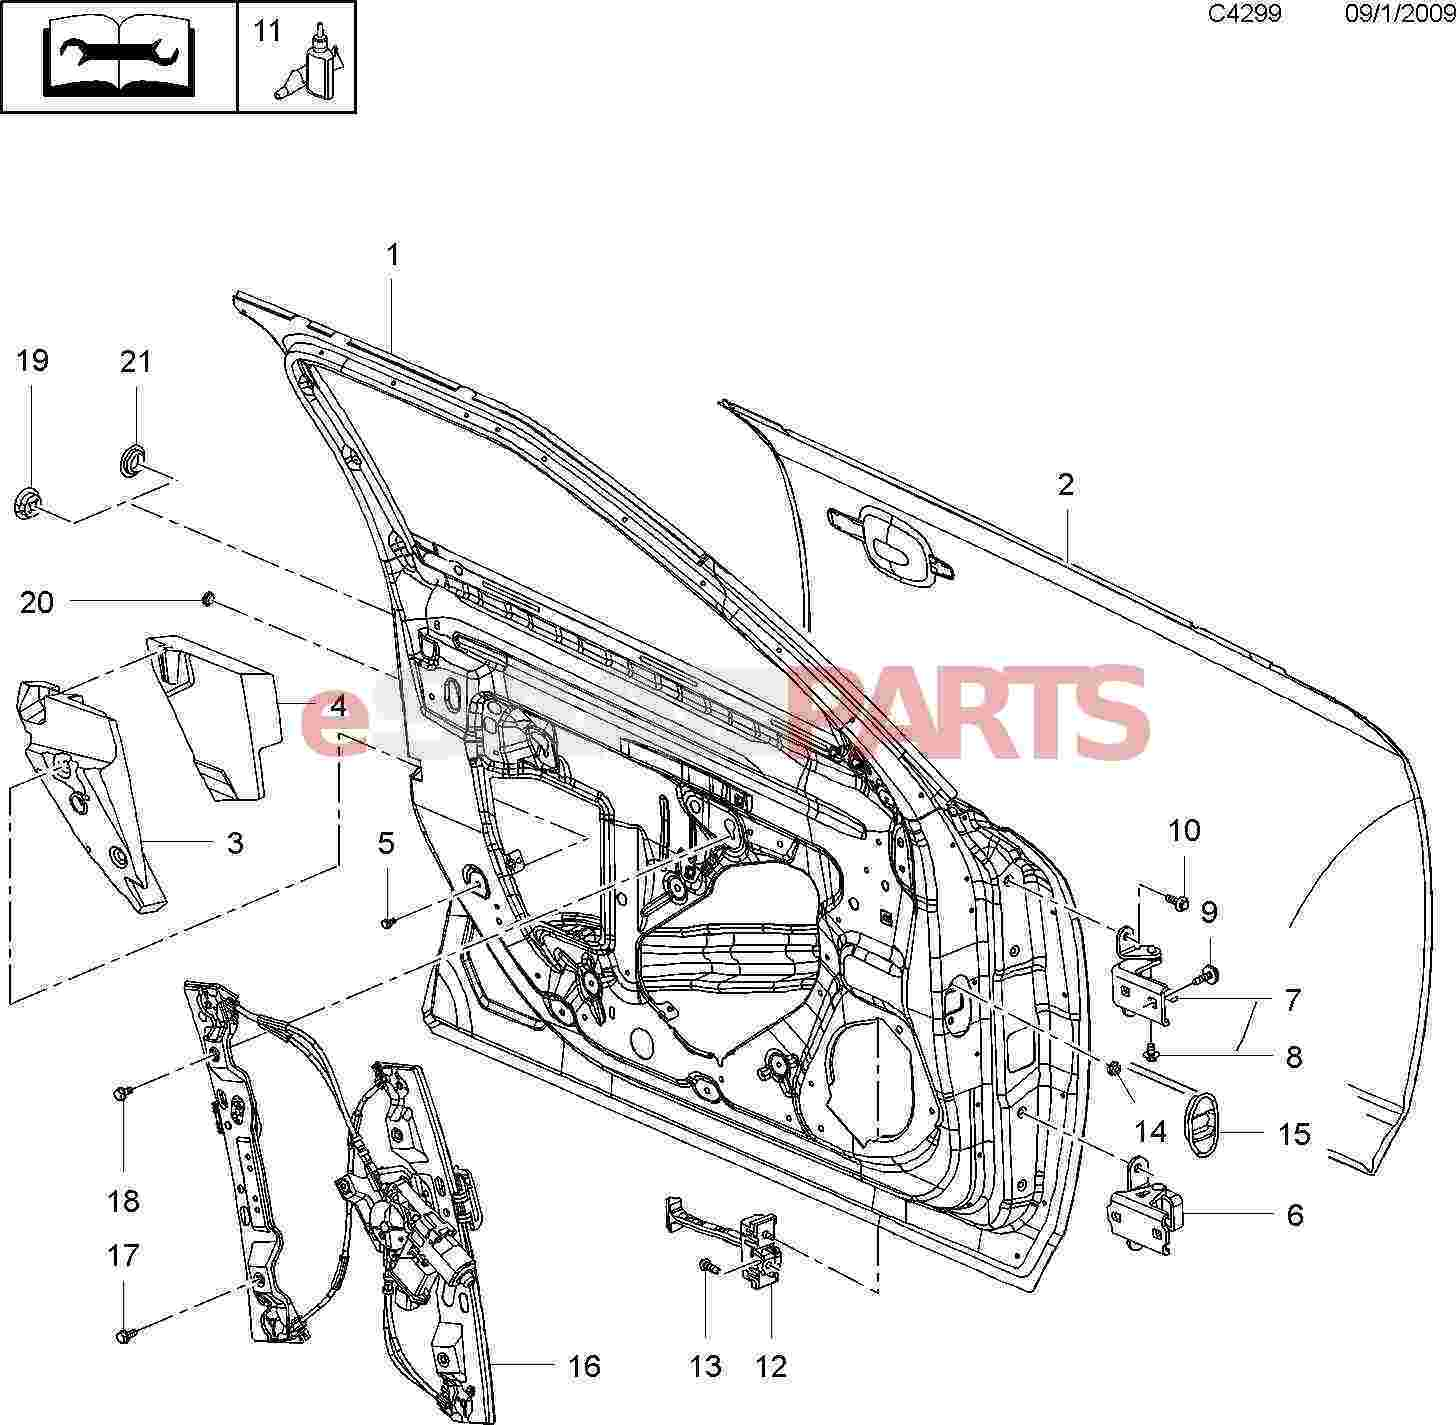 1999 Saab 9 5 Parts Diagram • Wiring Diagram For Free